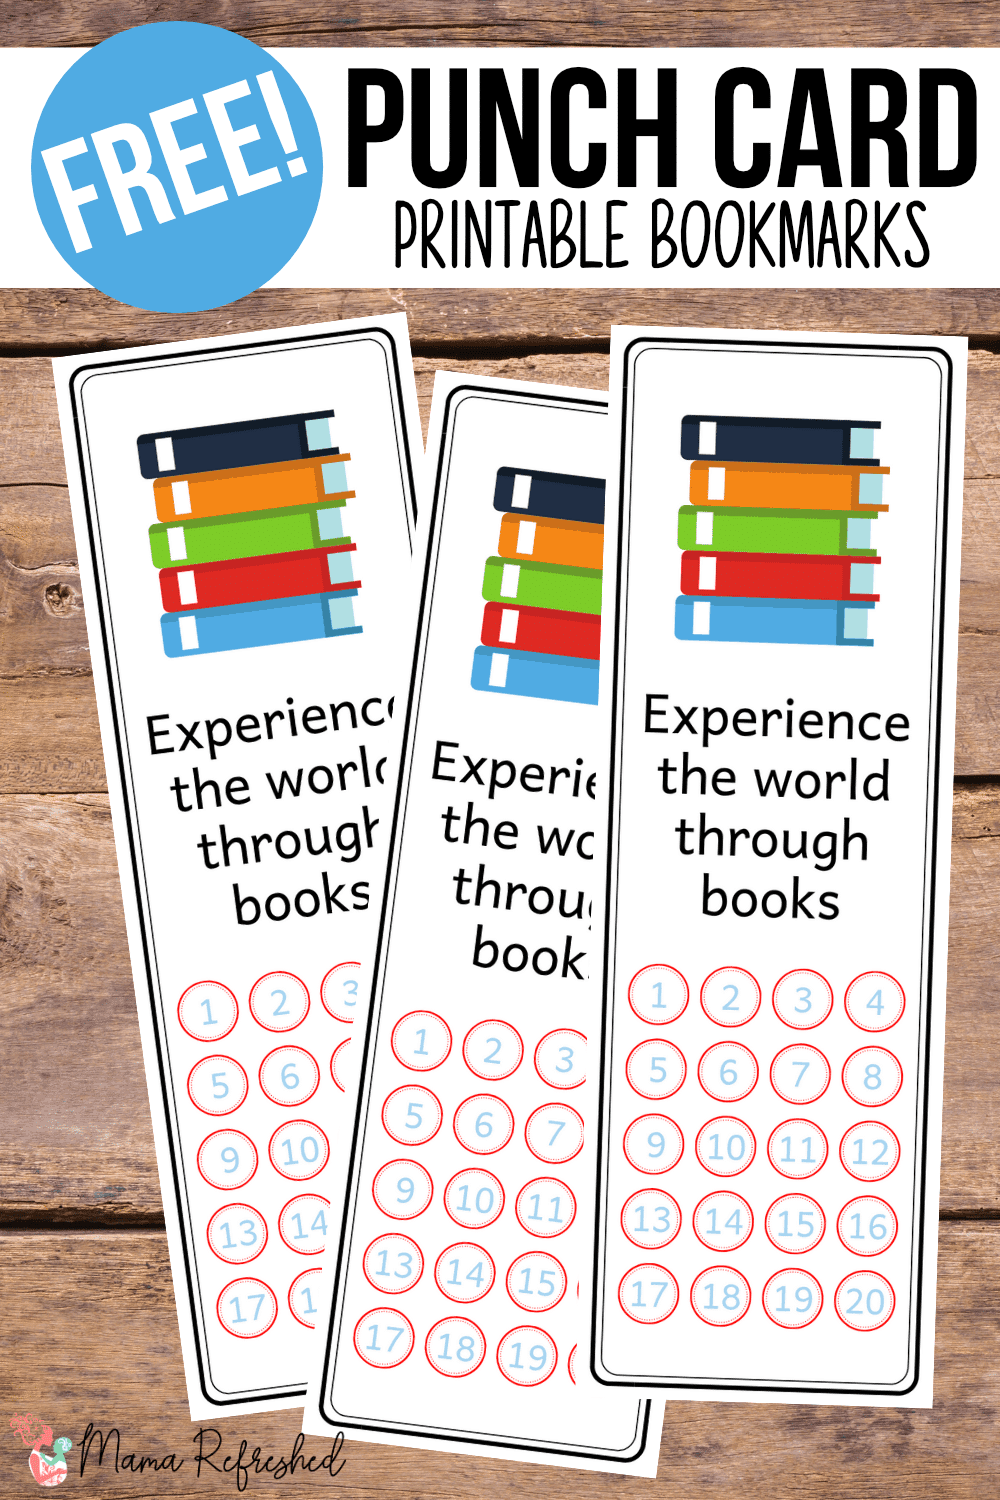 Punch Card Bookmarks (Free Printable)